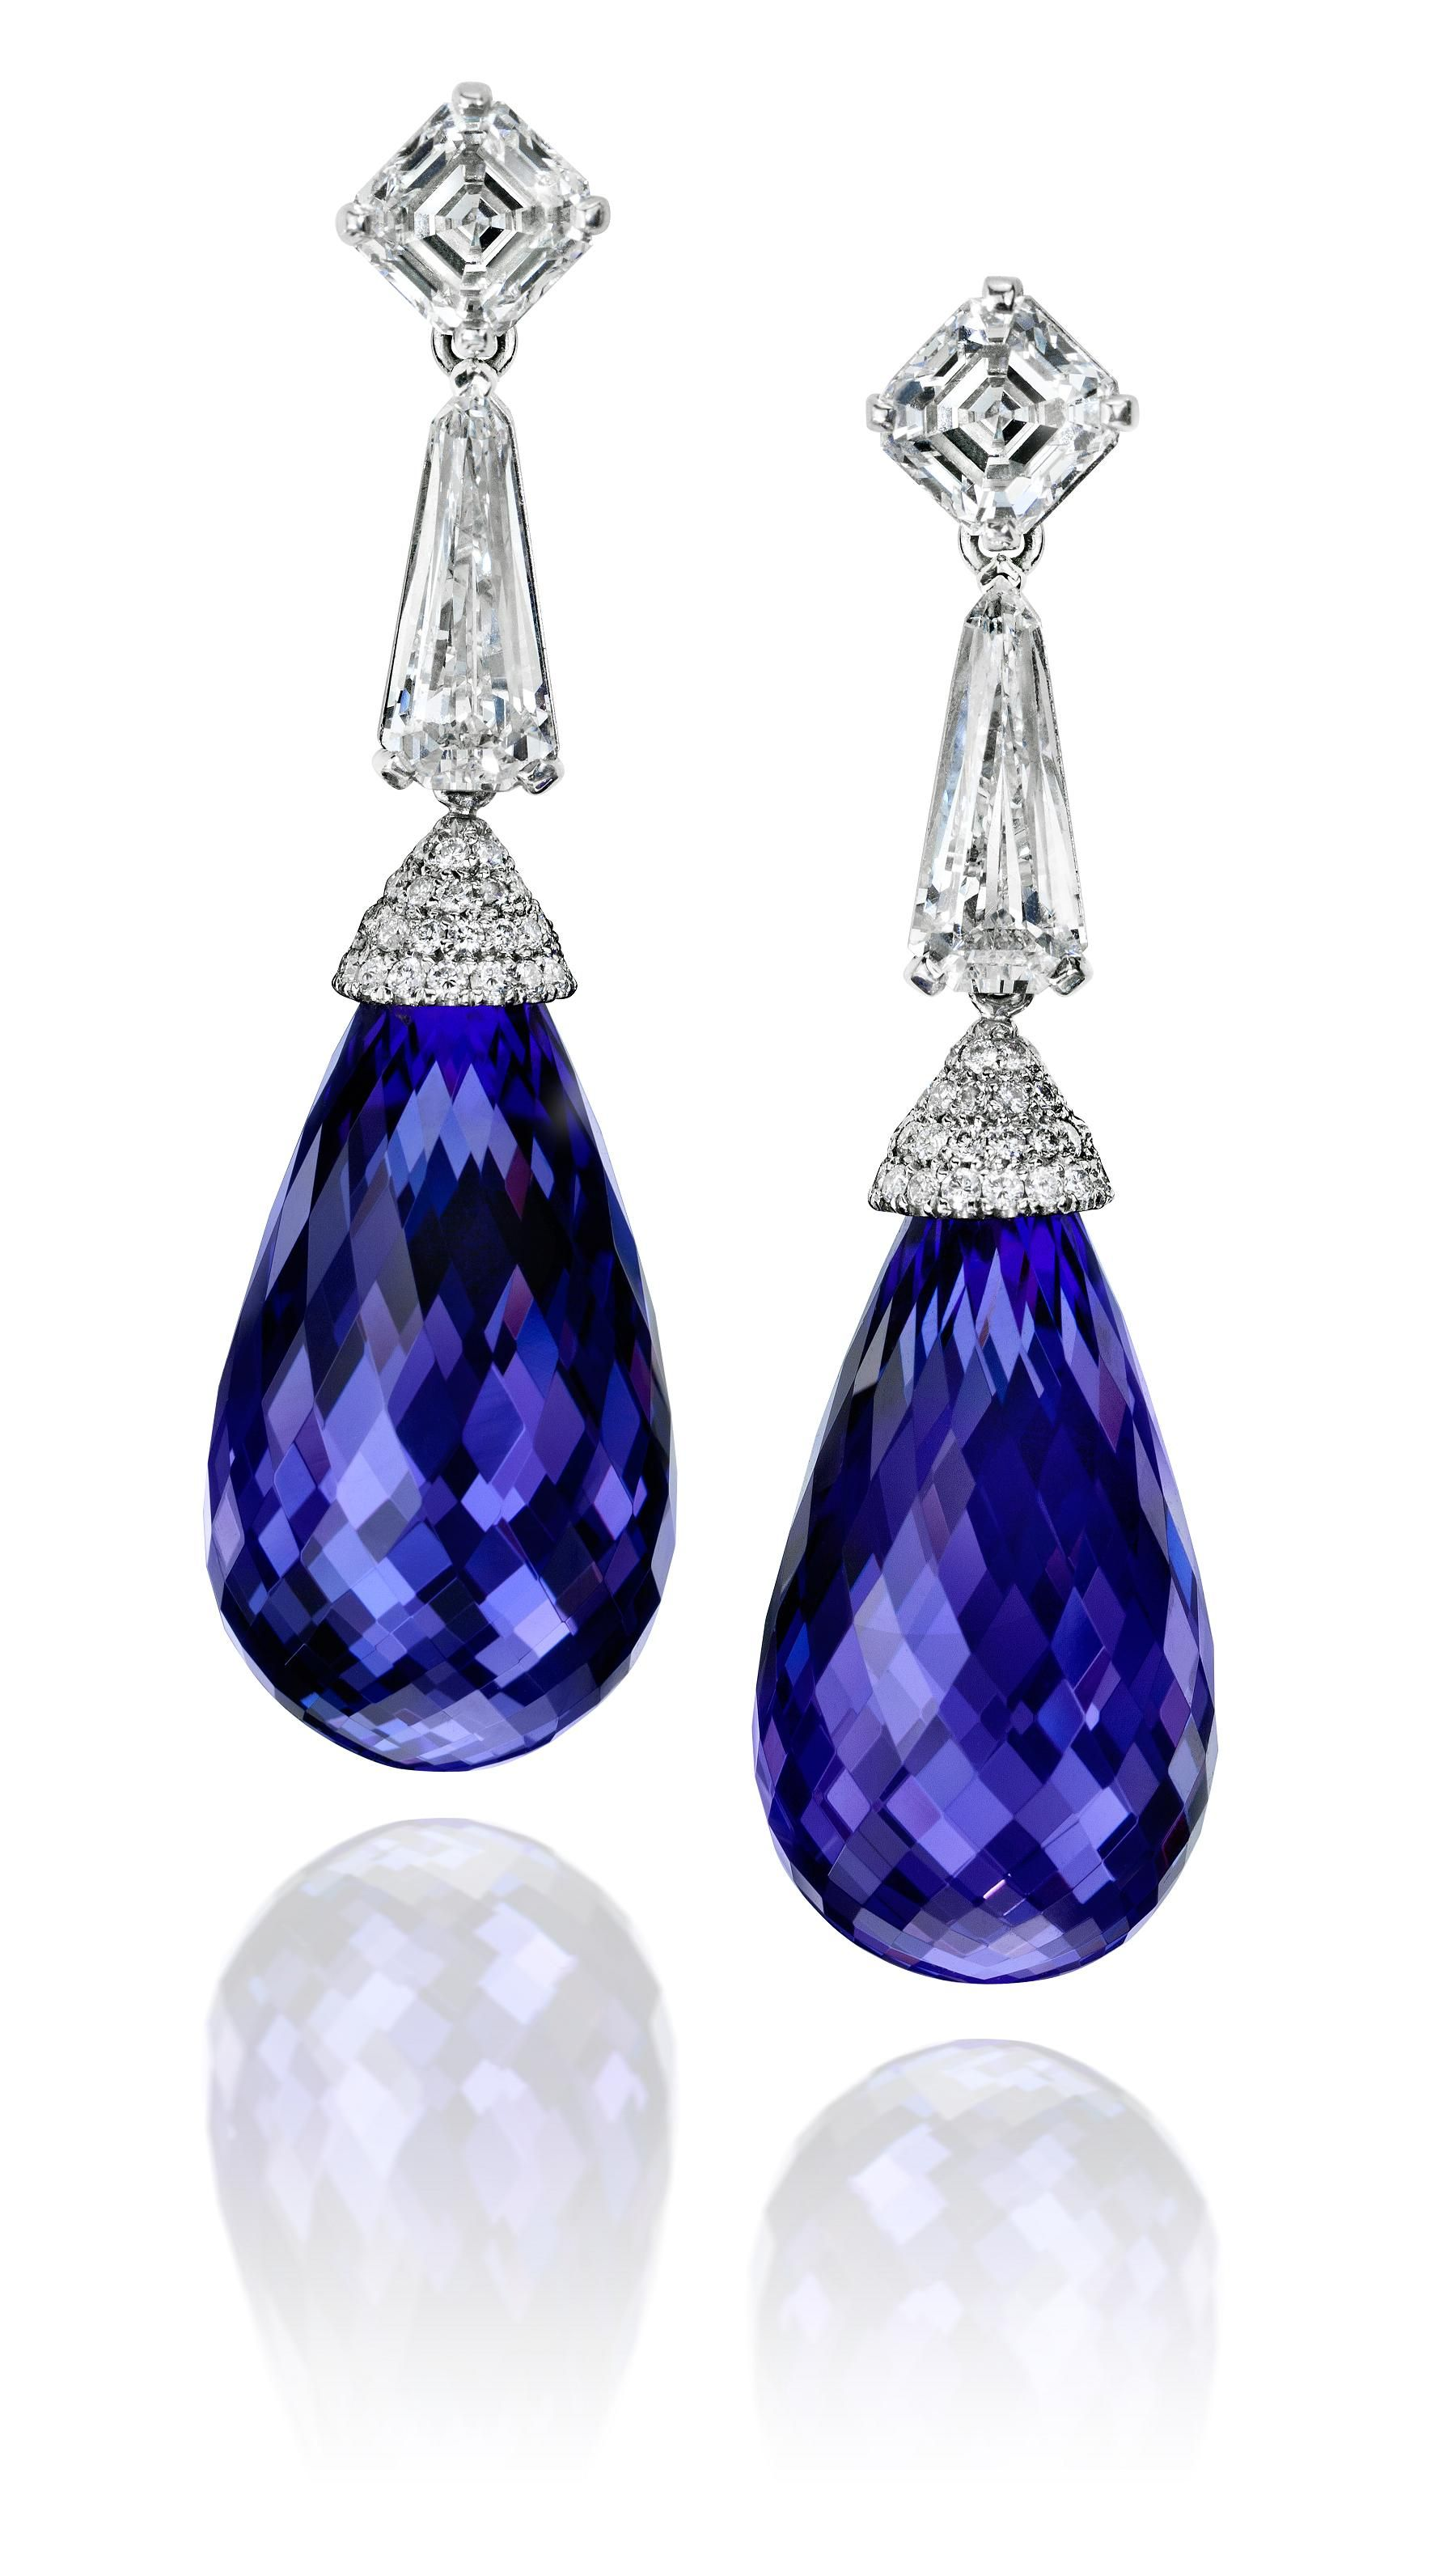 spear jewellery collections kata tanzanite kali earrings ice solo product